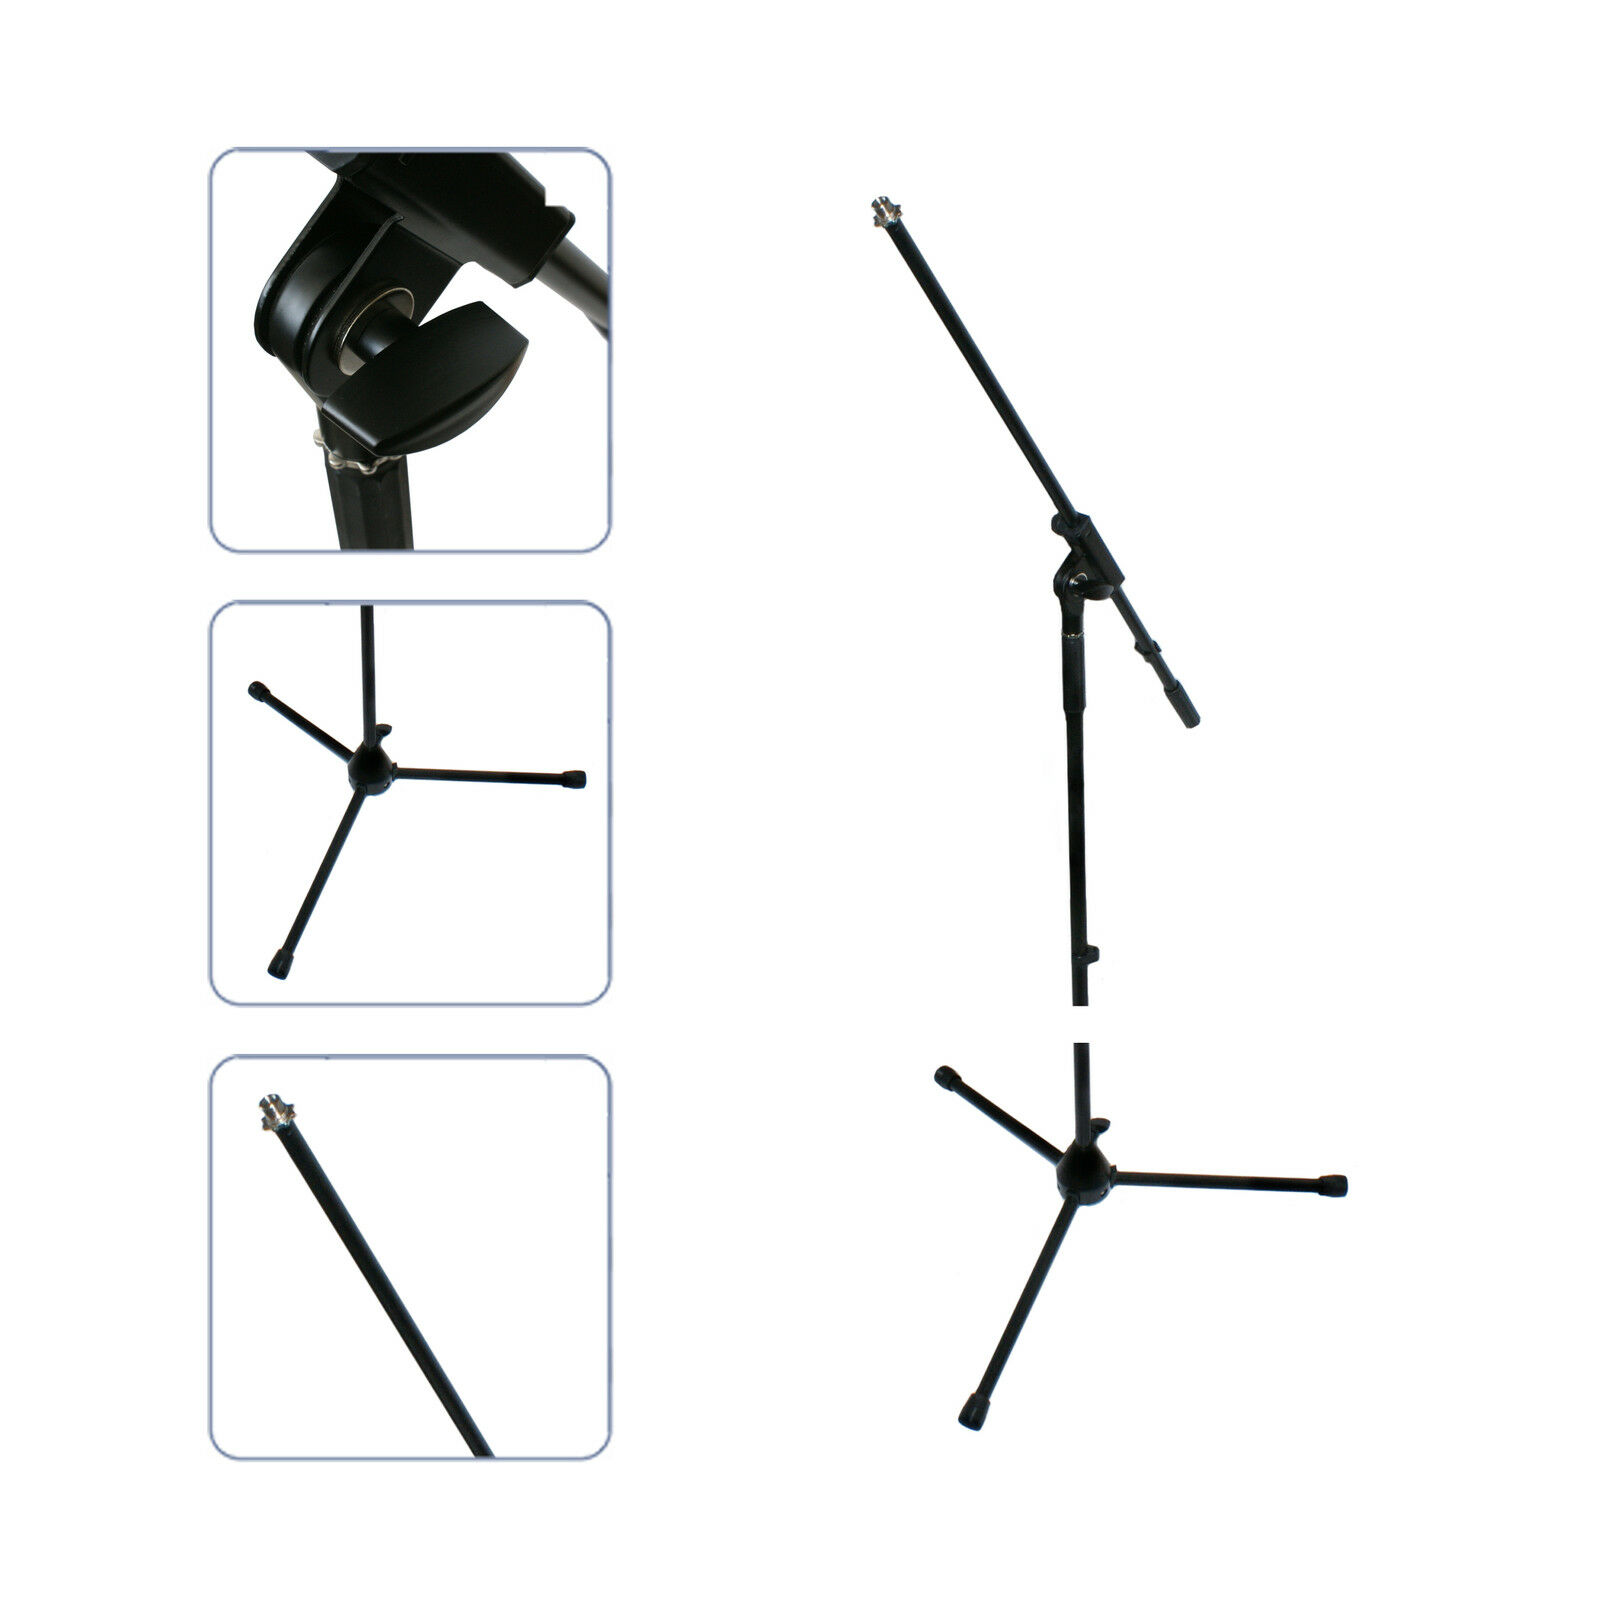 Mic/Microphone Height Adjustable Stand Removable Angle Boom Arm 1.6m Bracket